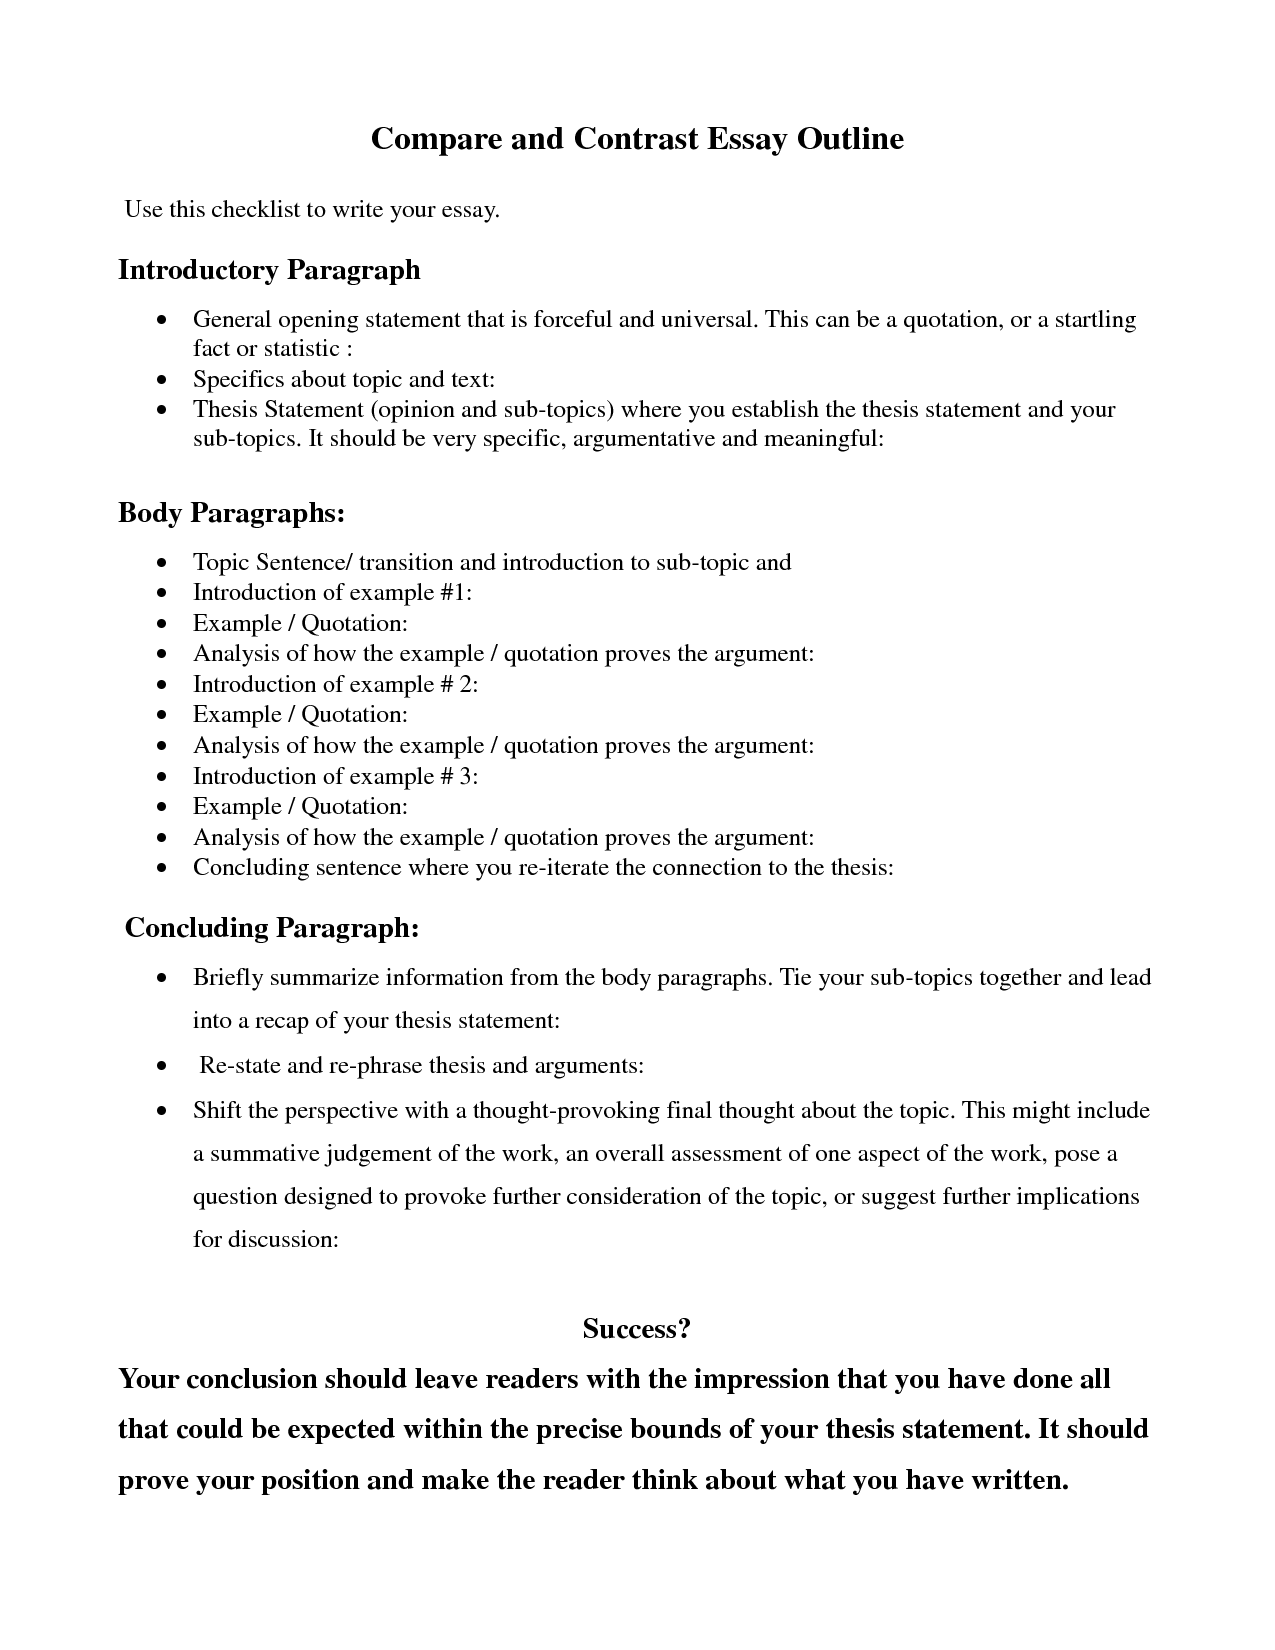 Essays On Multiculturalism Ap World History Compare Contrast Essay Rubric A Direct Comparison       Expands Beyond Basic Core Of Points The Basic Core Score Of  Must Be  Military Bearing Essay also Apa Essay Title Page Comparecontrast Essay Outline  Google Search  Education  Computer In Education Essay